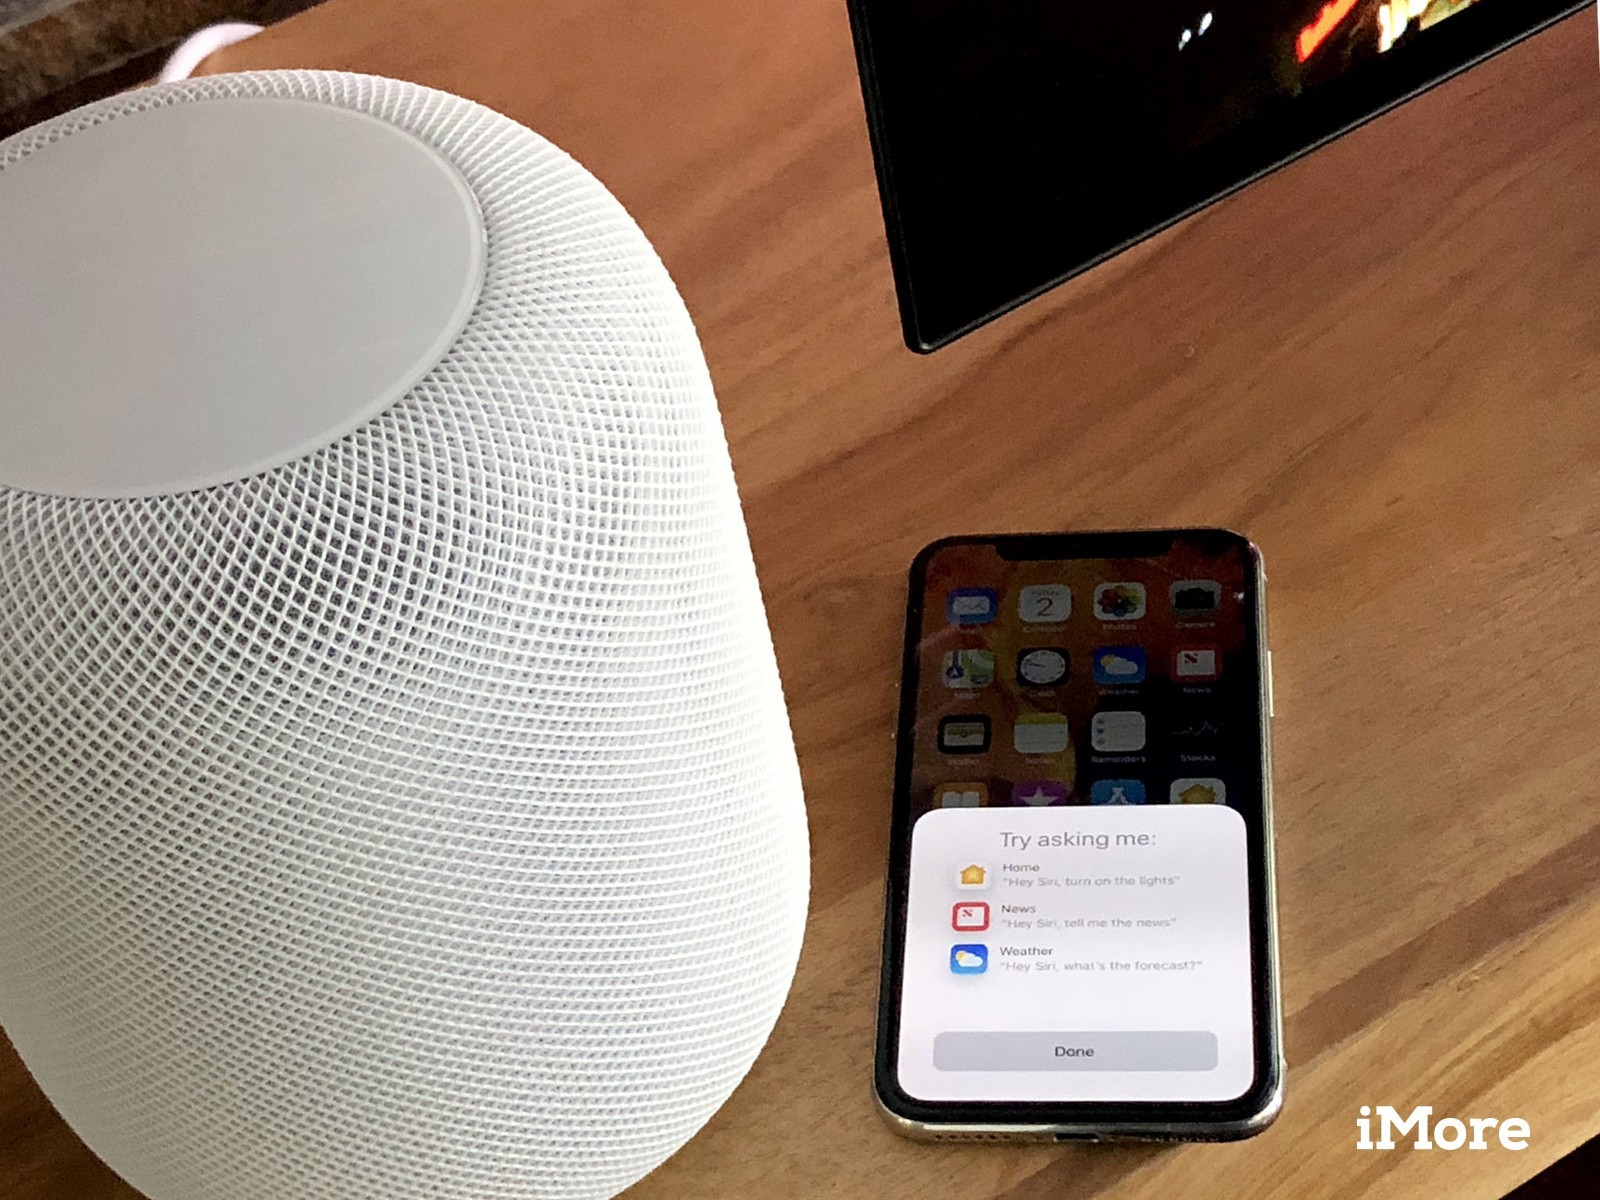 Wallpaper Dinding Minimalis Terbaik Untuk Homepod Review Retina for Your Ears Of Wallpaper Dinding Minimalis Terbagus Untuk Best Home Minimalist Poster